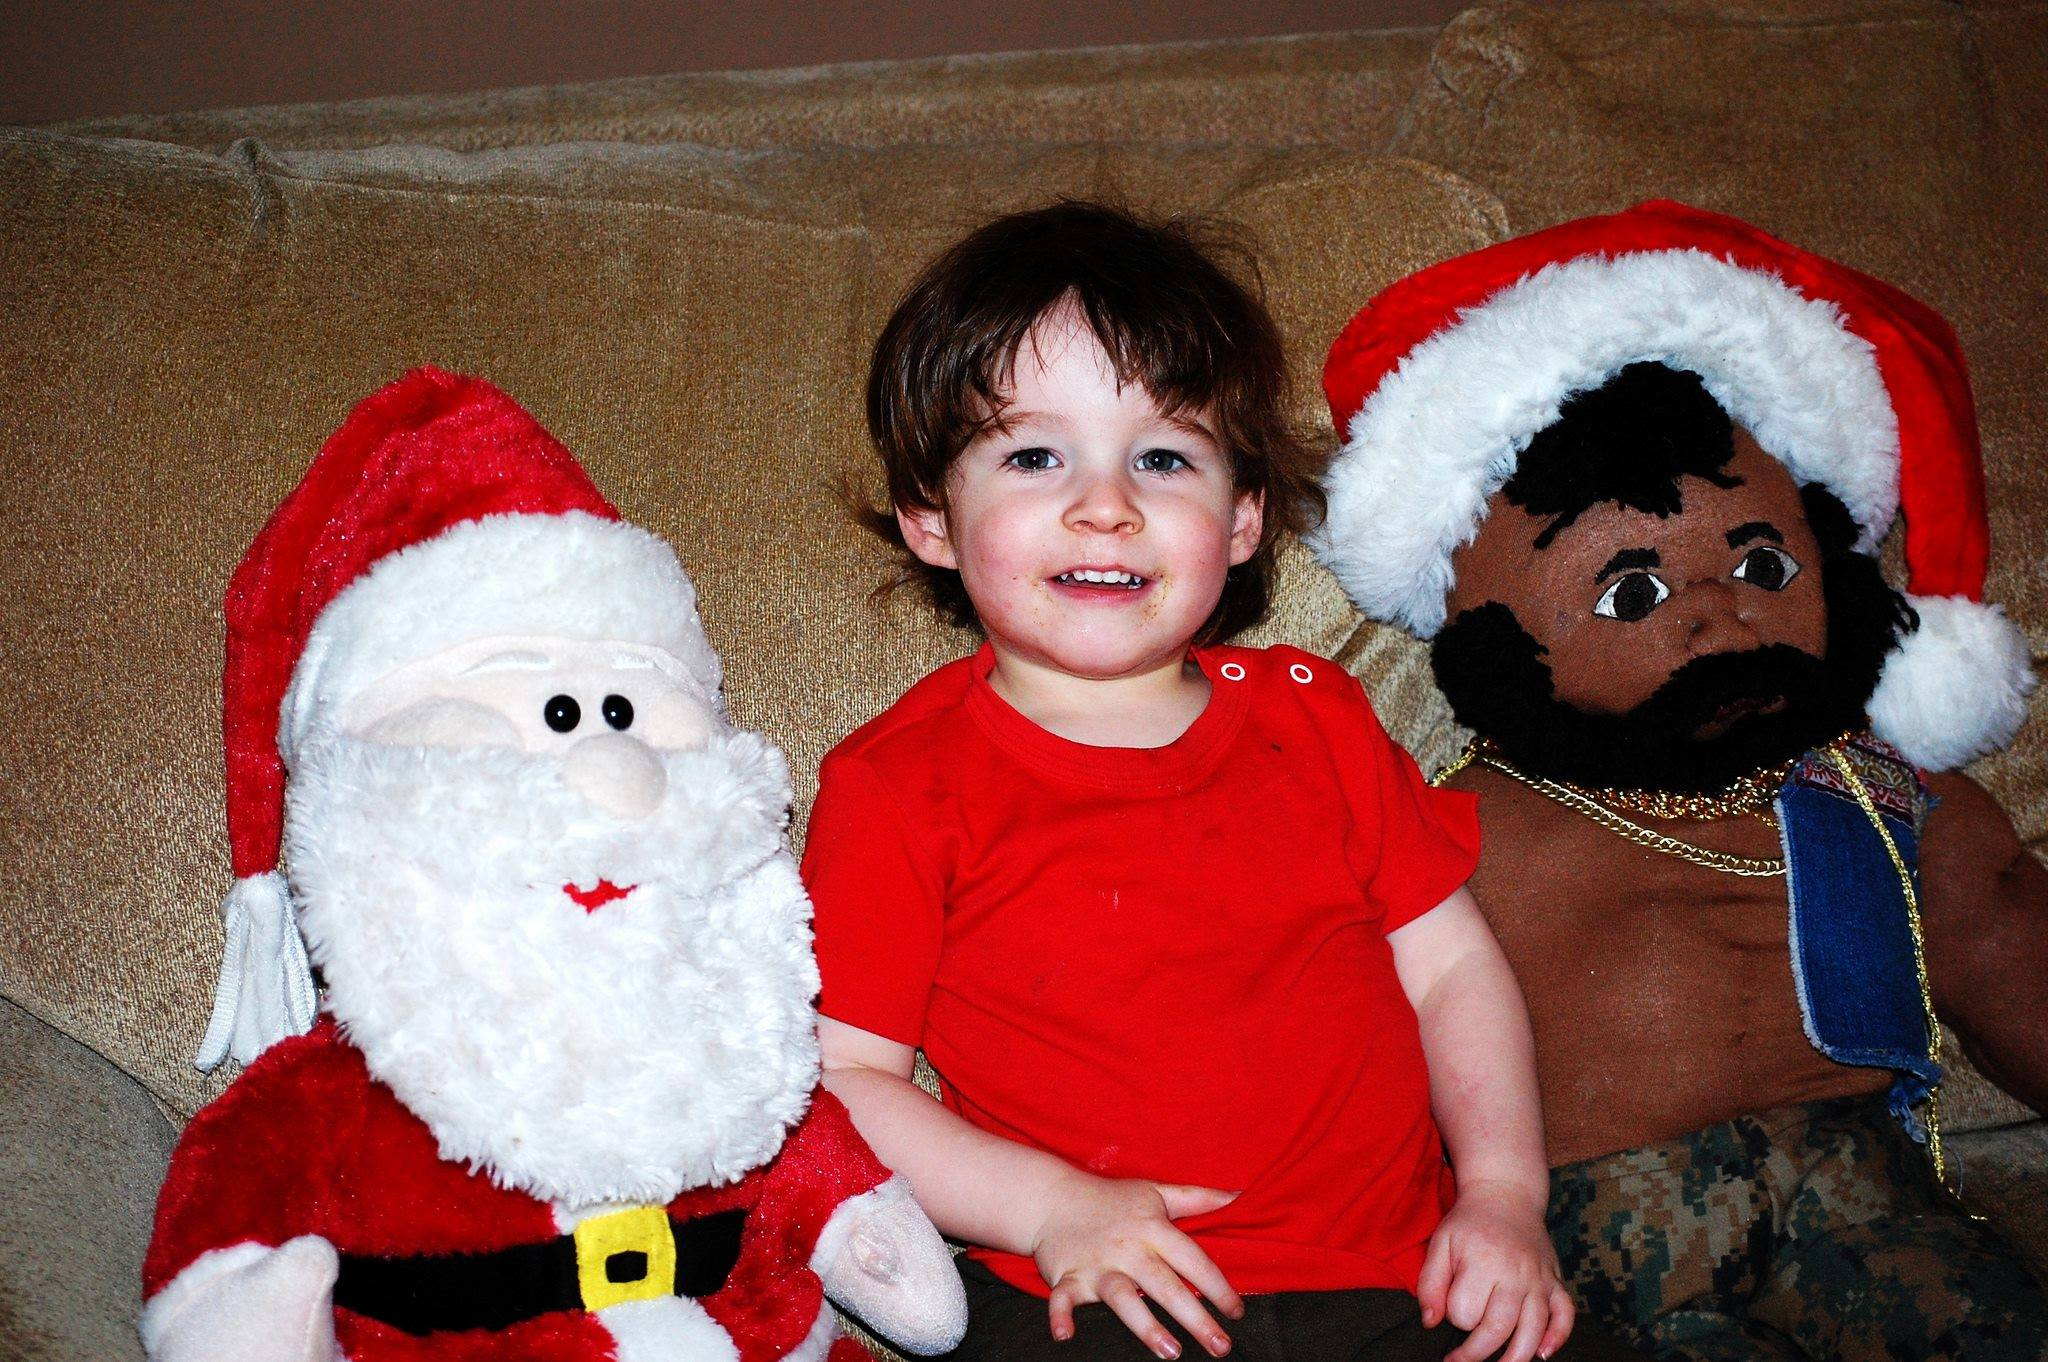 One year old with Santa and Mr. T